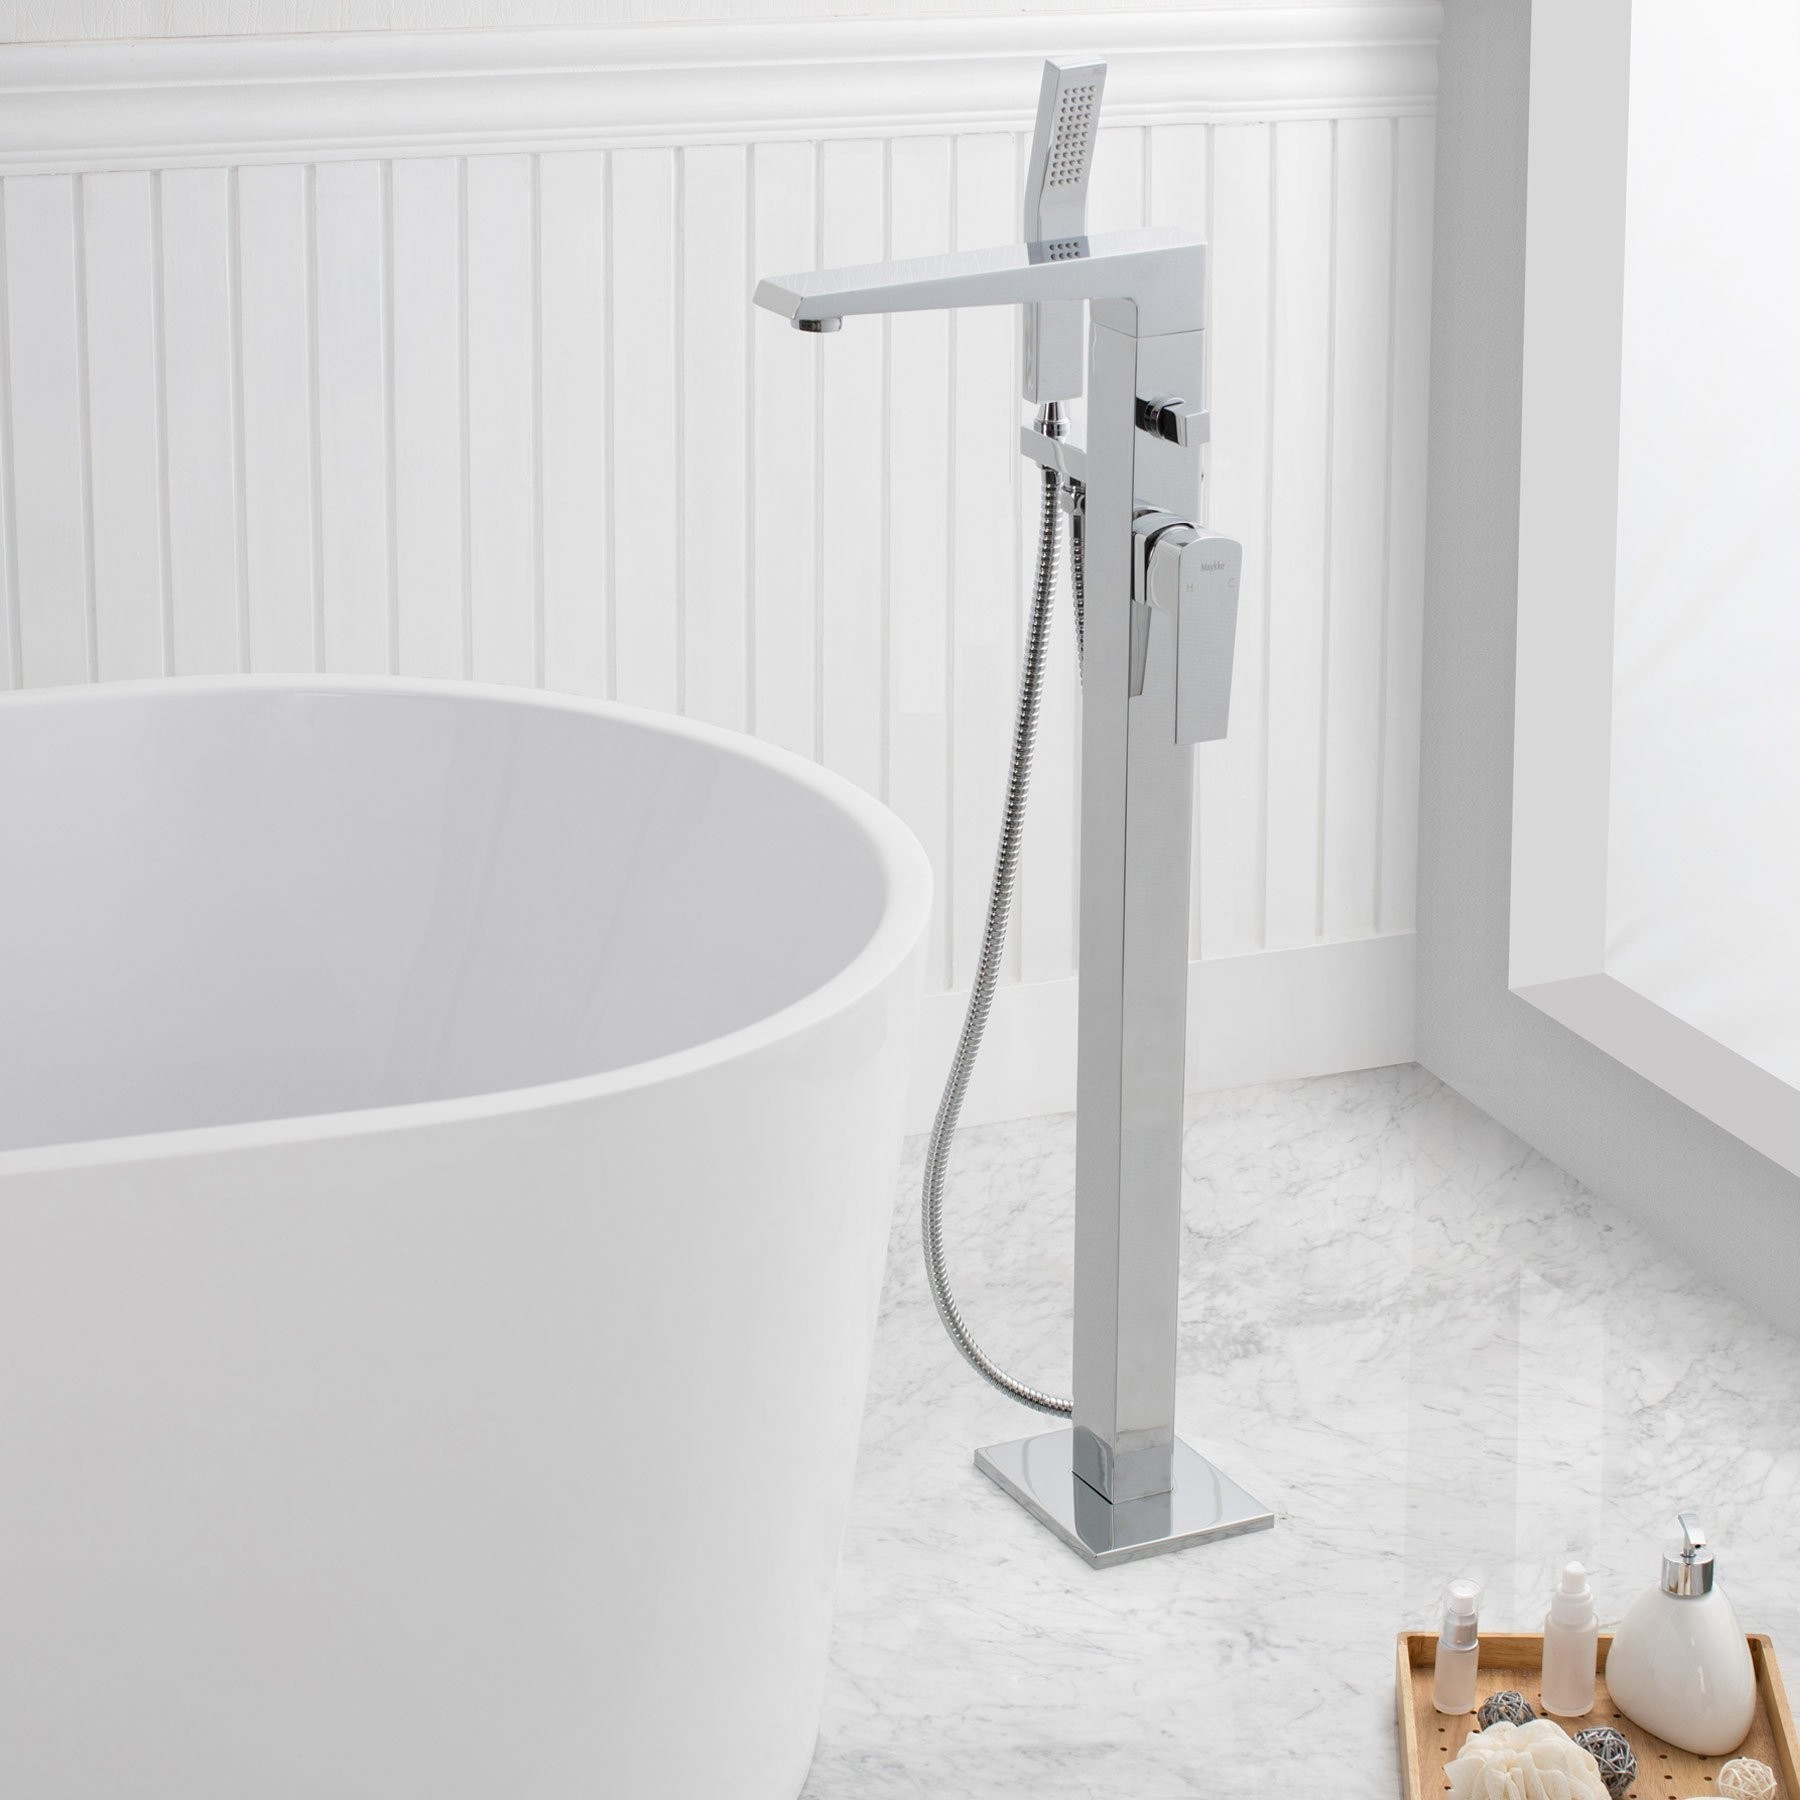 Augusta Freestanding Bathtub Faucet With Hand Shower. Previous; Next